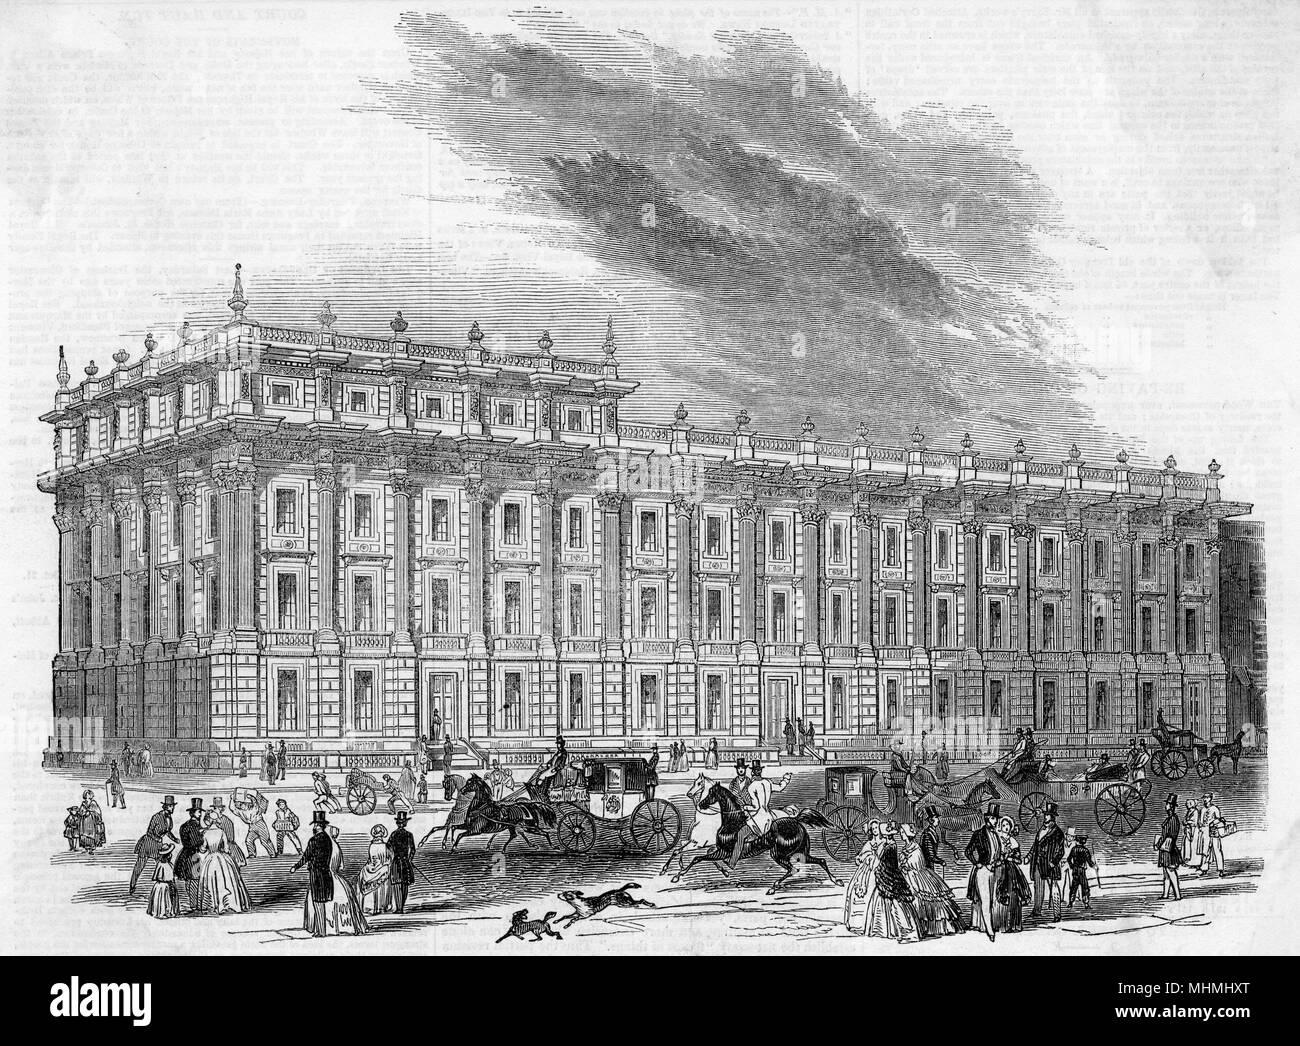 Office of the Privy Council, Whitehall, designed by Sir Charles Barry       Date: 1846 - Stock Image